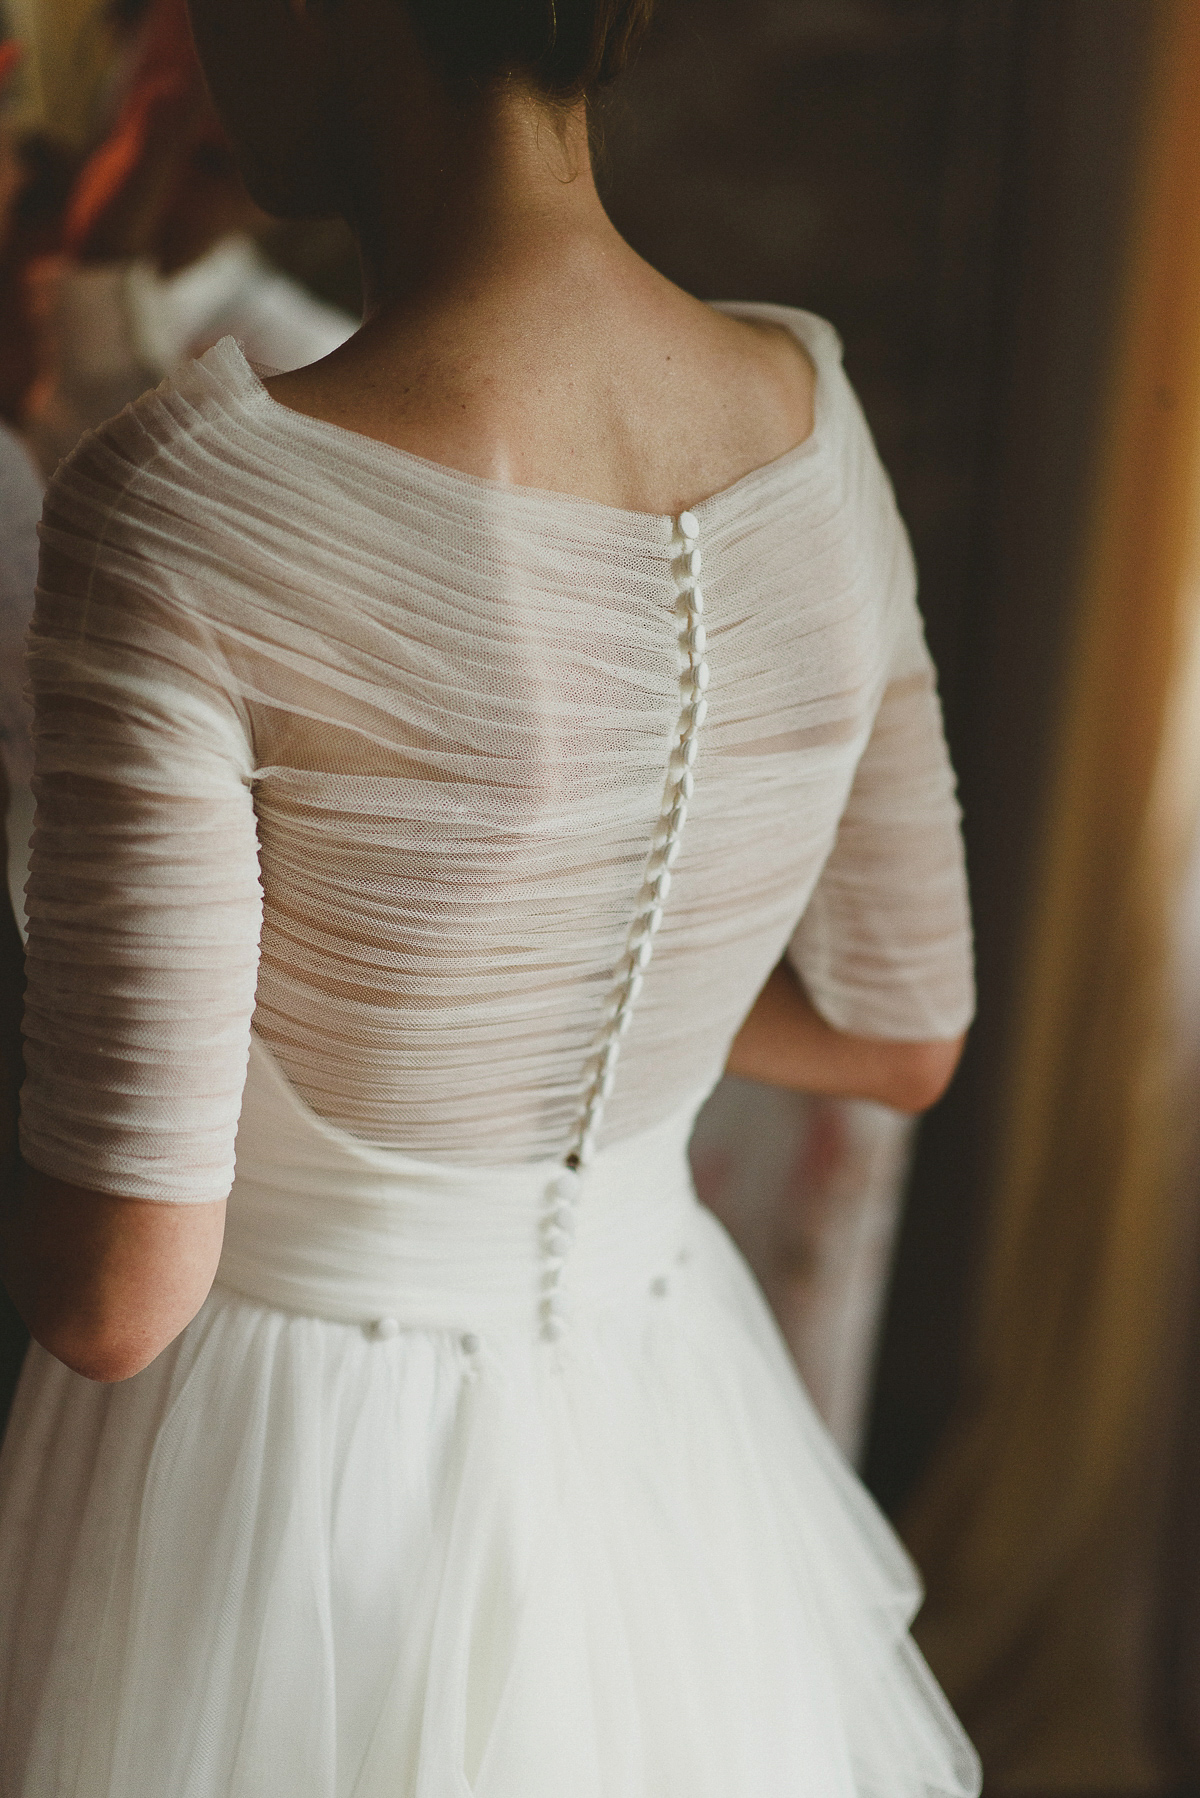 Roxana wore a Pronovias gown for her intimate summer wedding in Romania.